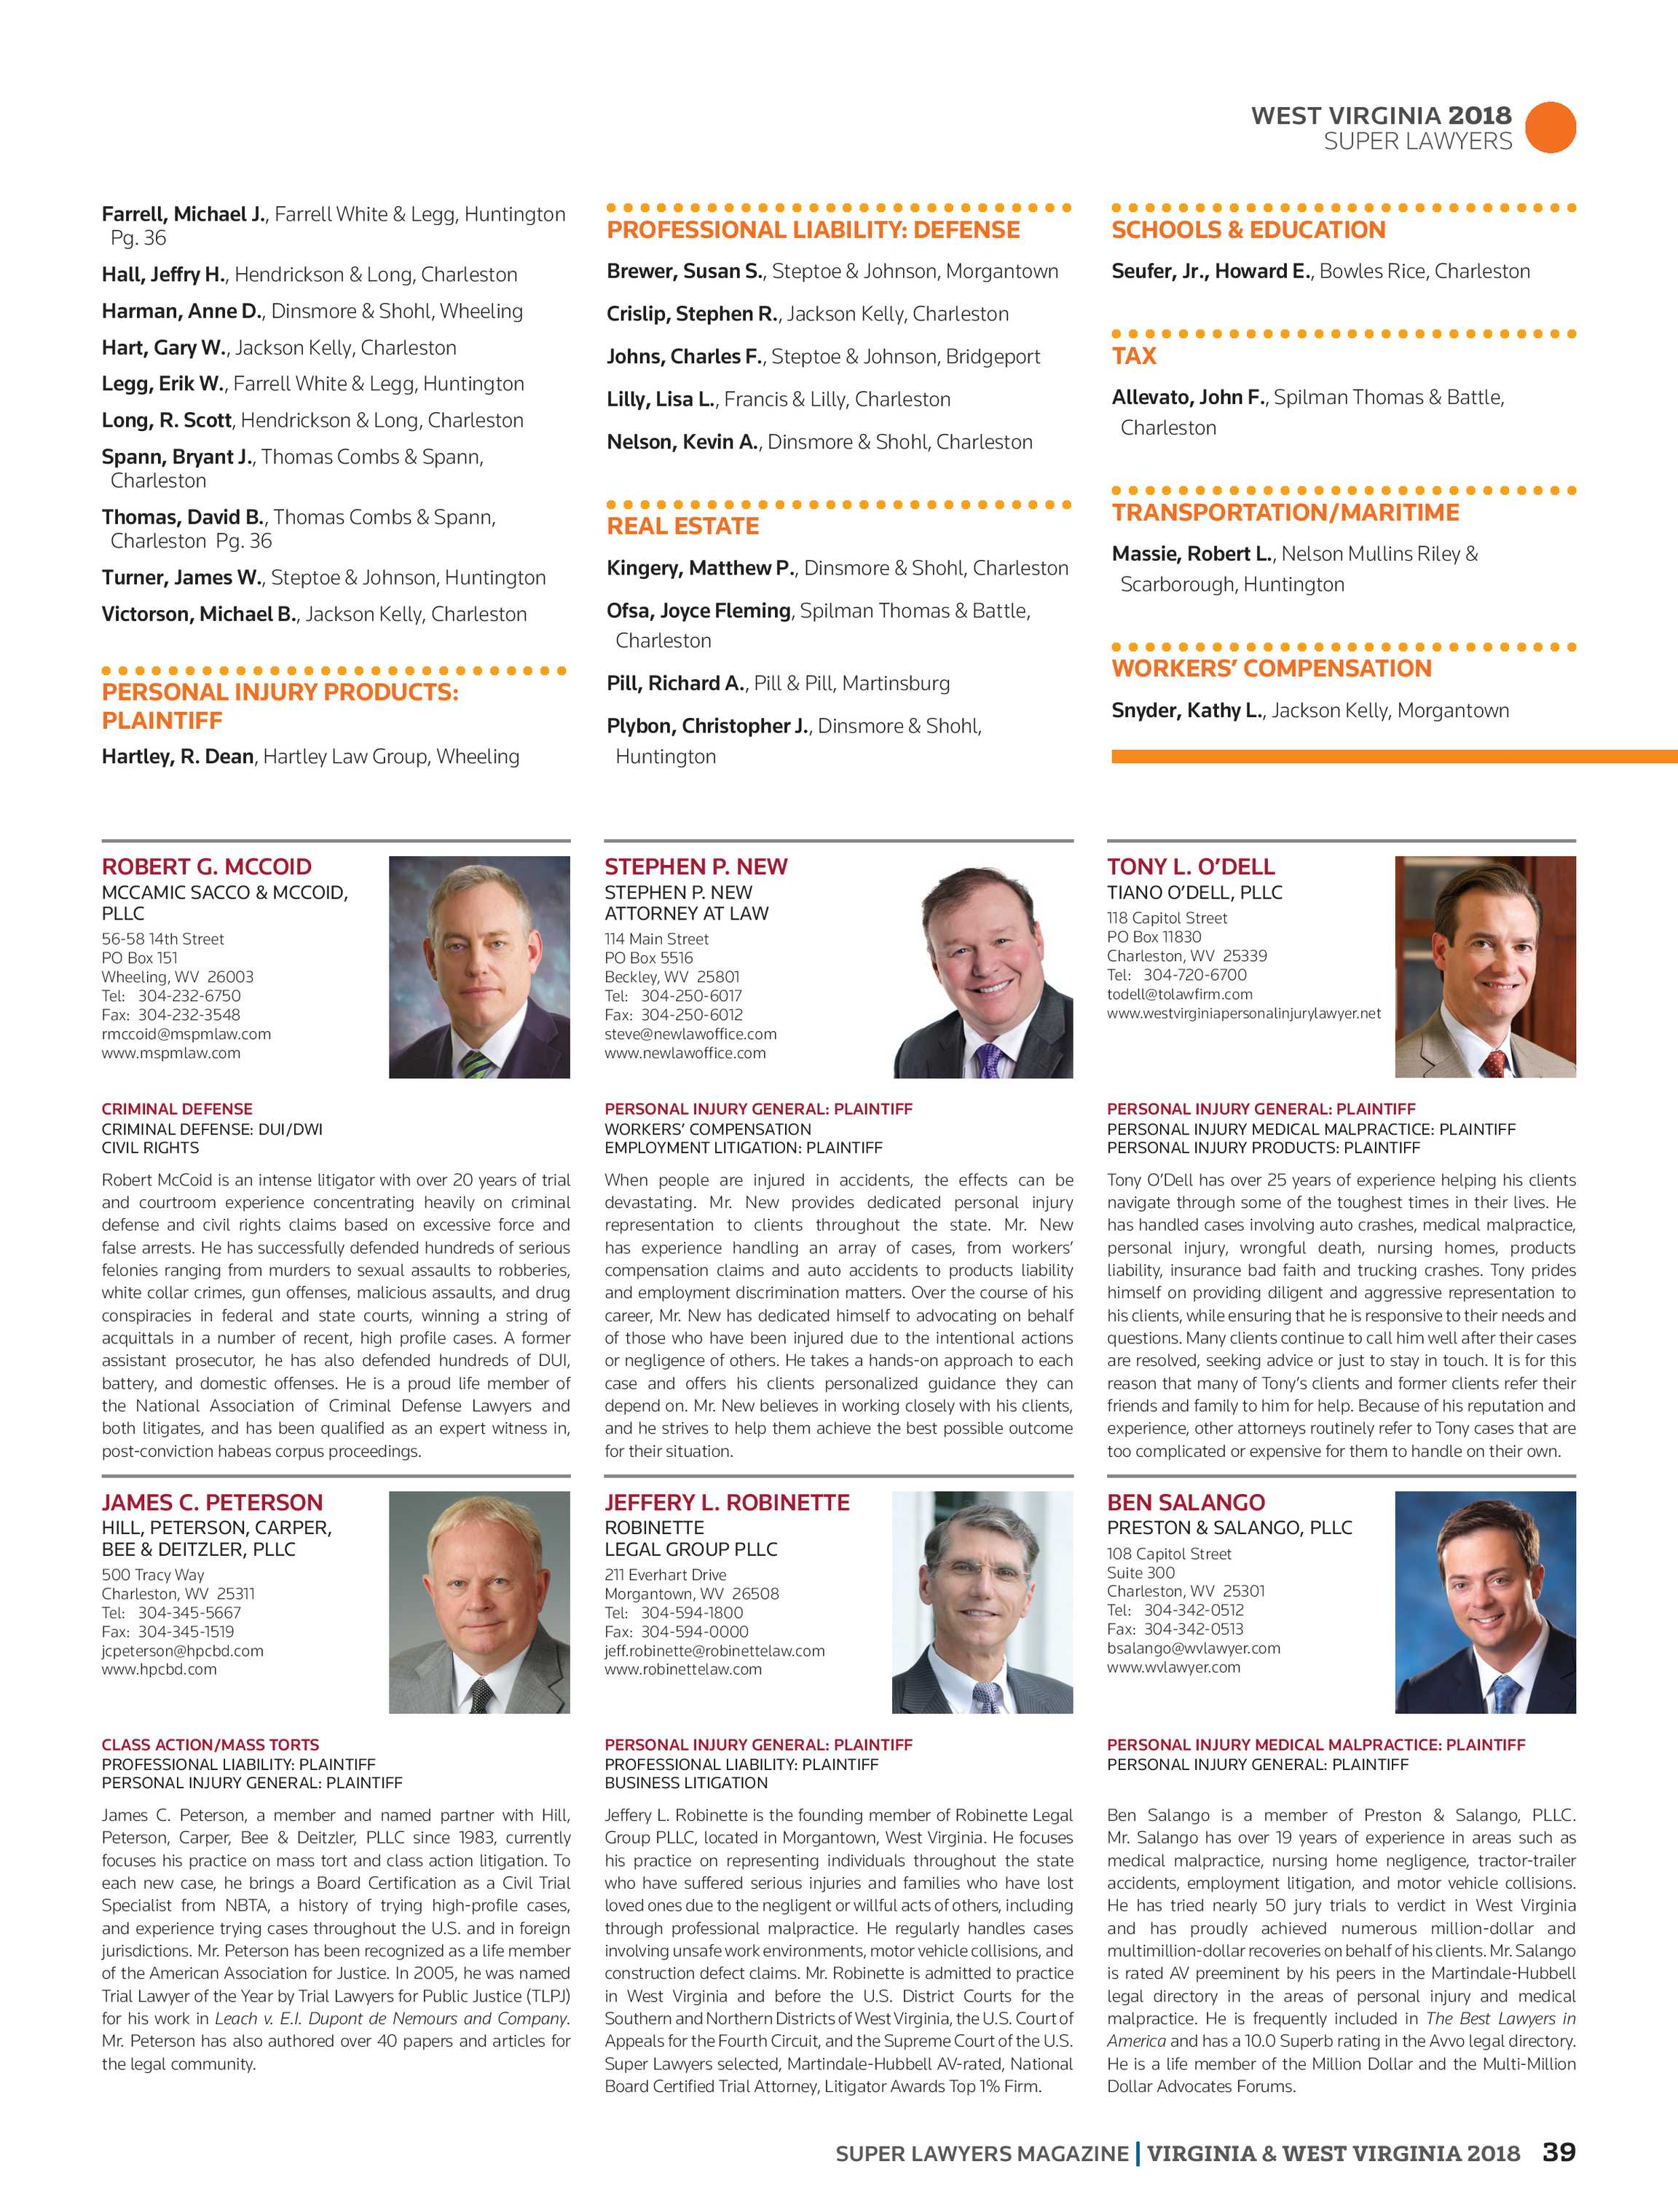 Super Lawyers - Virginia and West Virginia 2018 - page 39